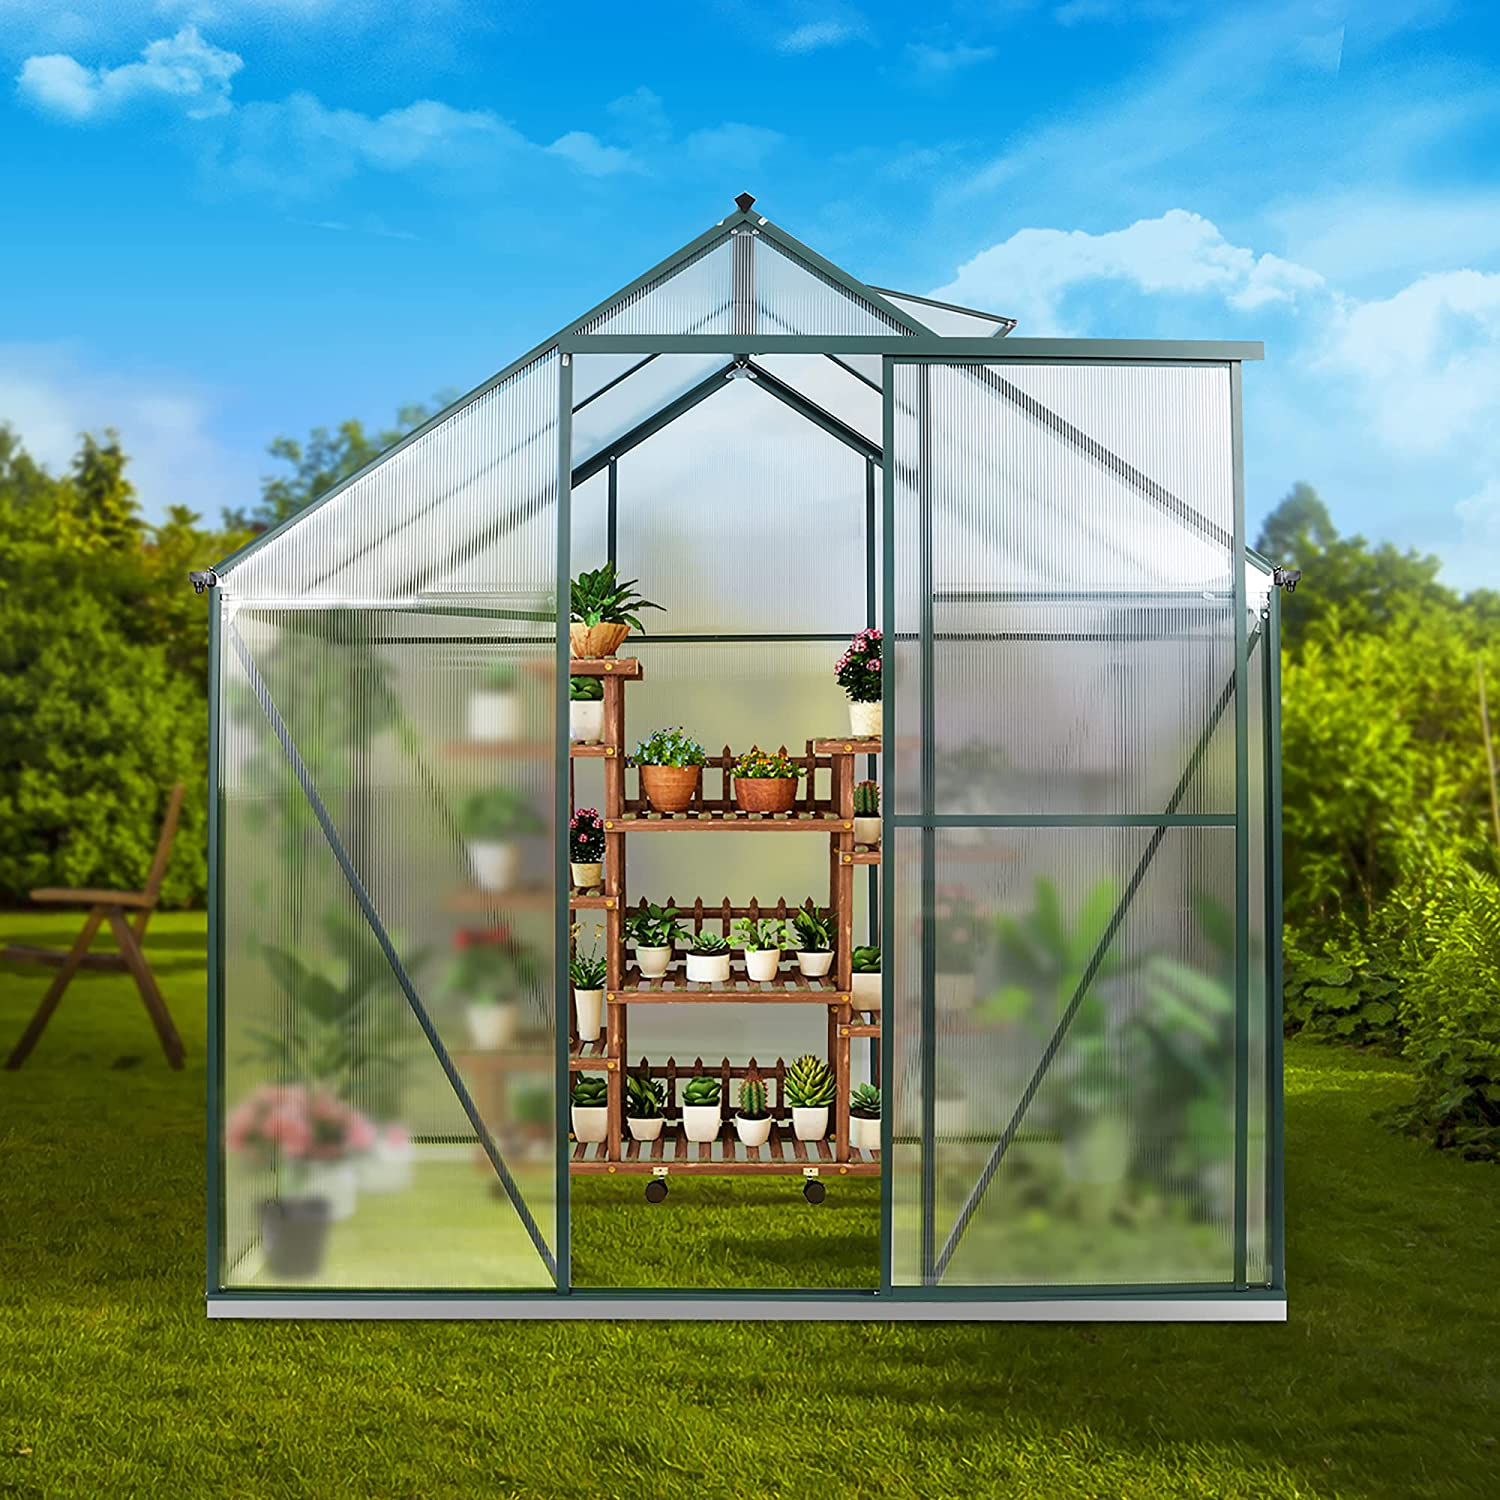 JULY'S SONG 6'x8' Greenhouse,Polycarbonate Walk-in Plant Greenhouse with Window for Winter,Garden Green House Kit for Backyard/Outdoor Use(8'x6')